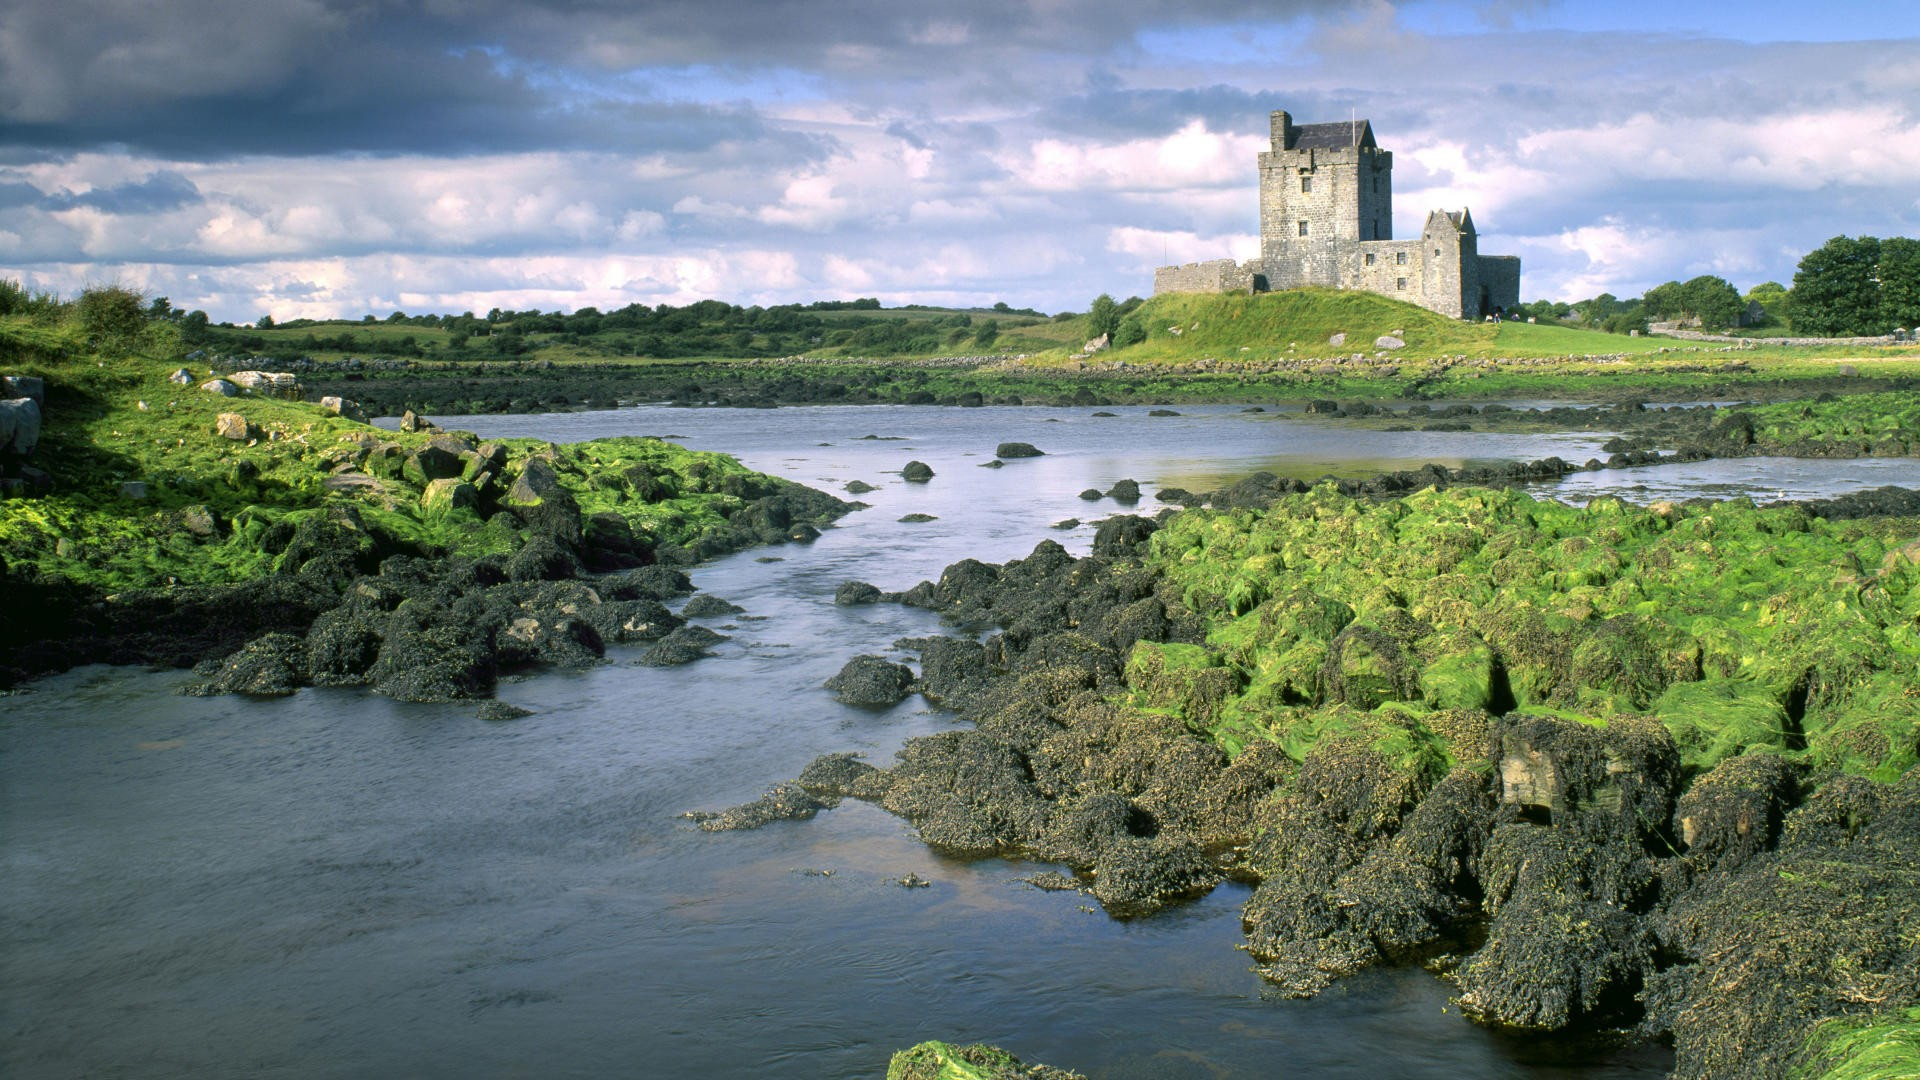 world_ireland_castle_desktop_1920x1080_hd-wallpaper-1525968.jpg